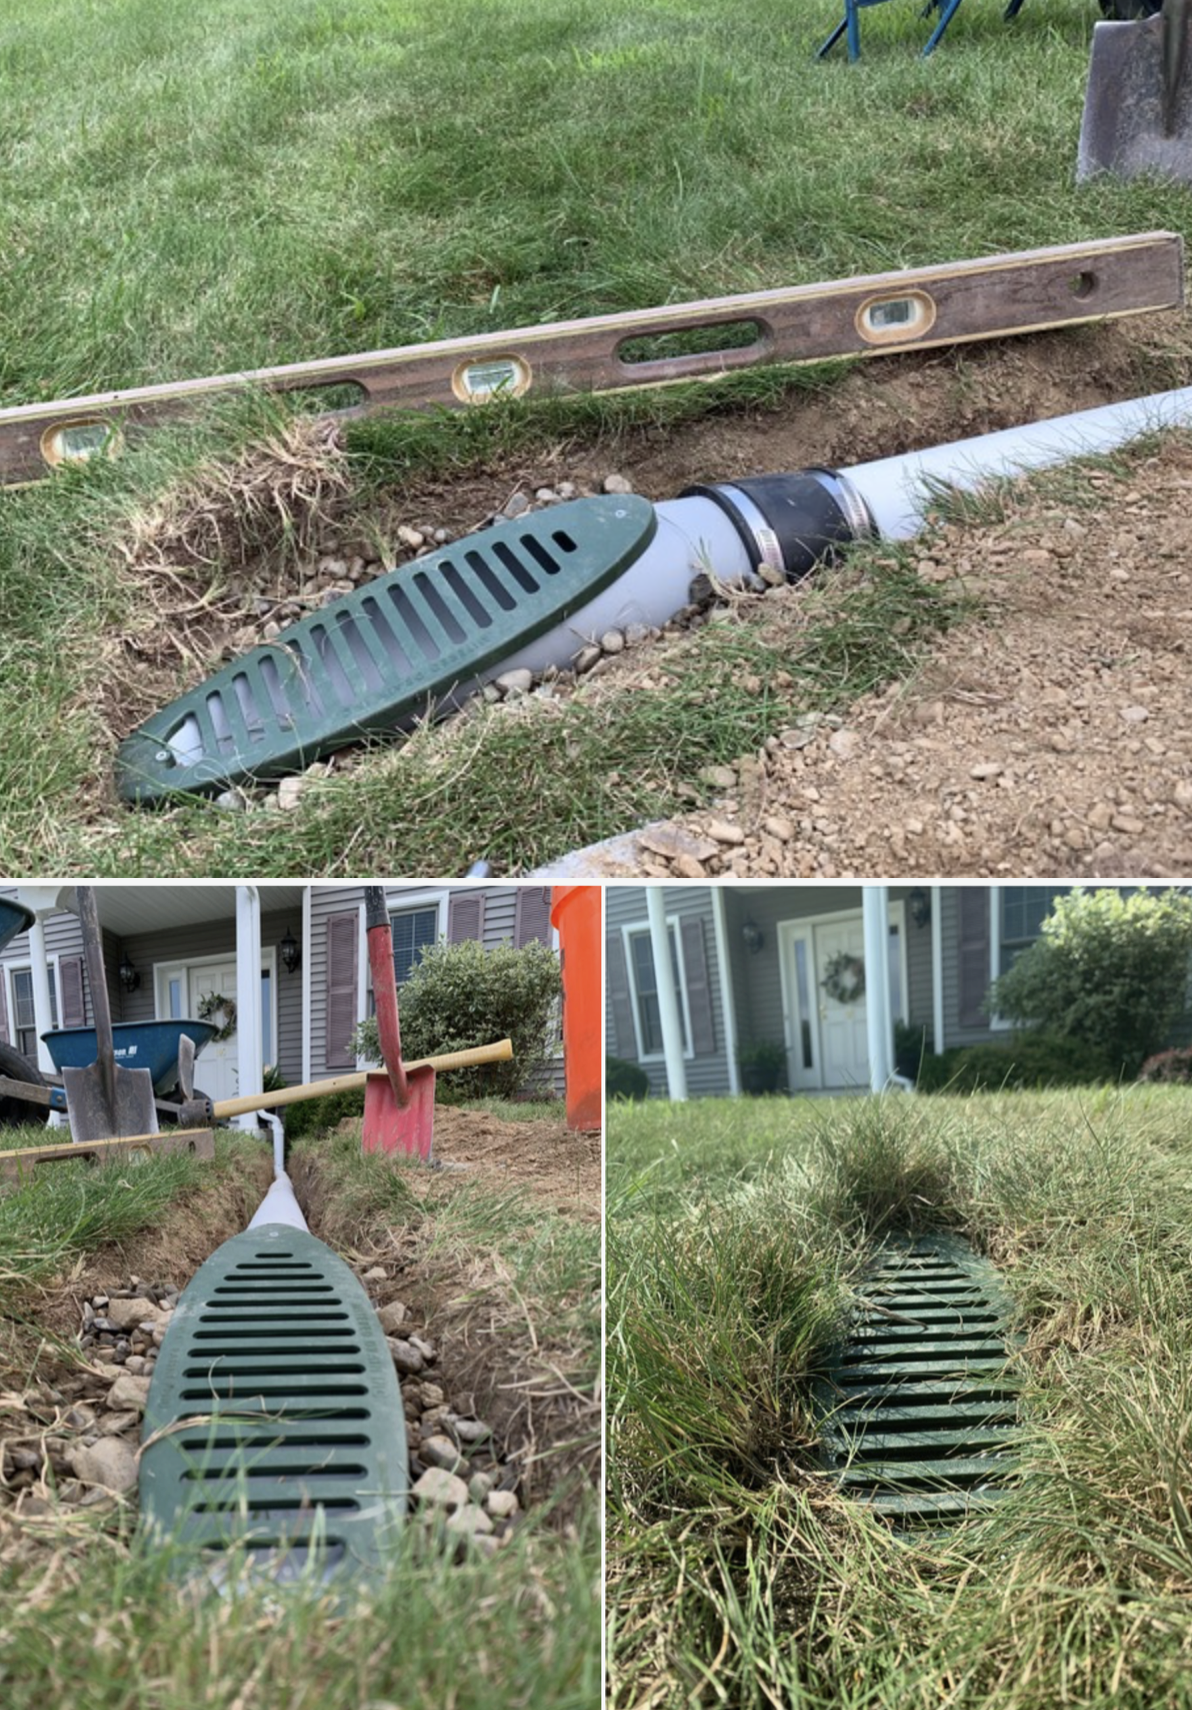 Buried Downspout Drainage System Installation Gutter Water Piped Underground To A Surface Drain In 2020 Backyard Drainage Downspout Drainage Yard Drainage